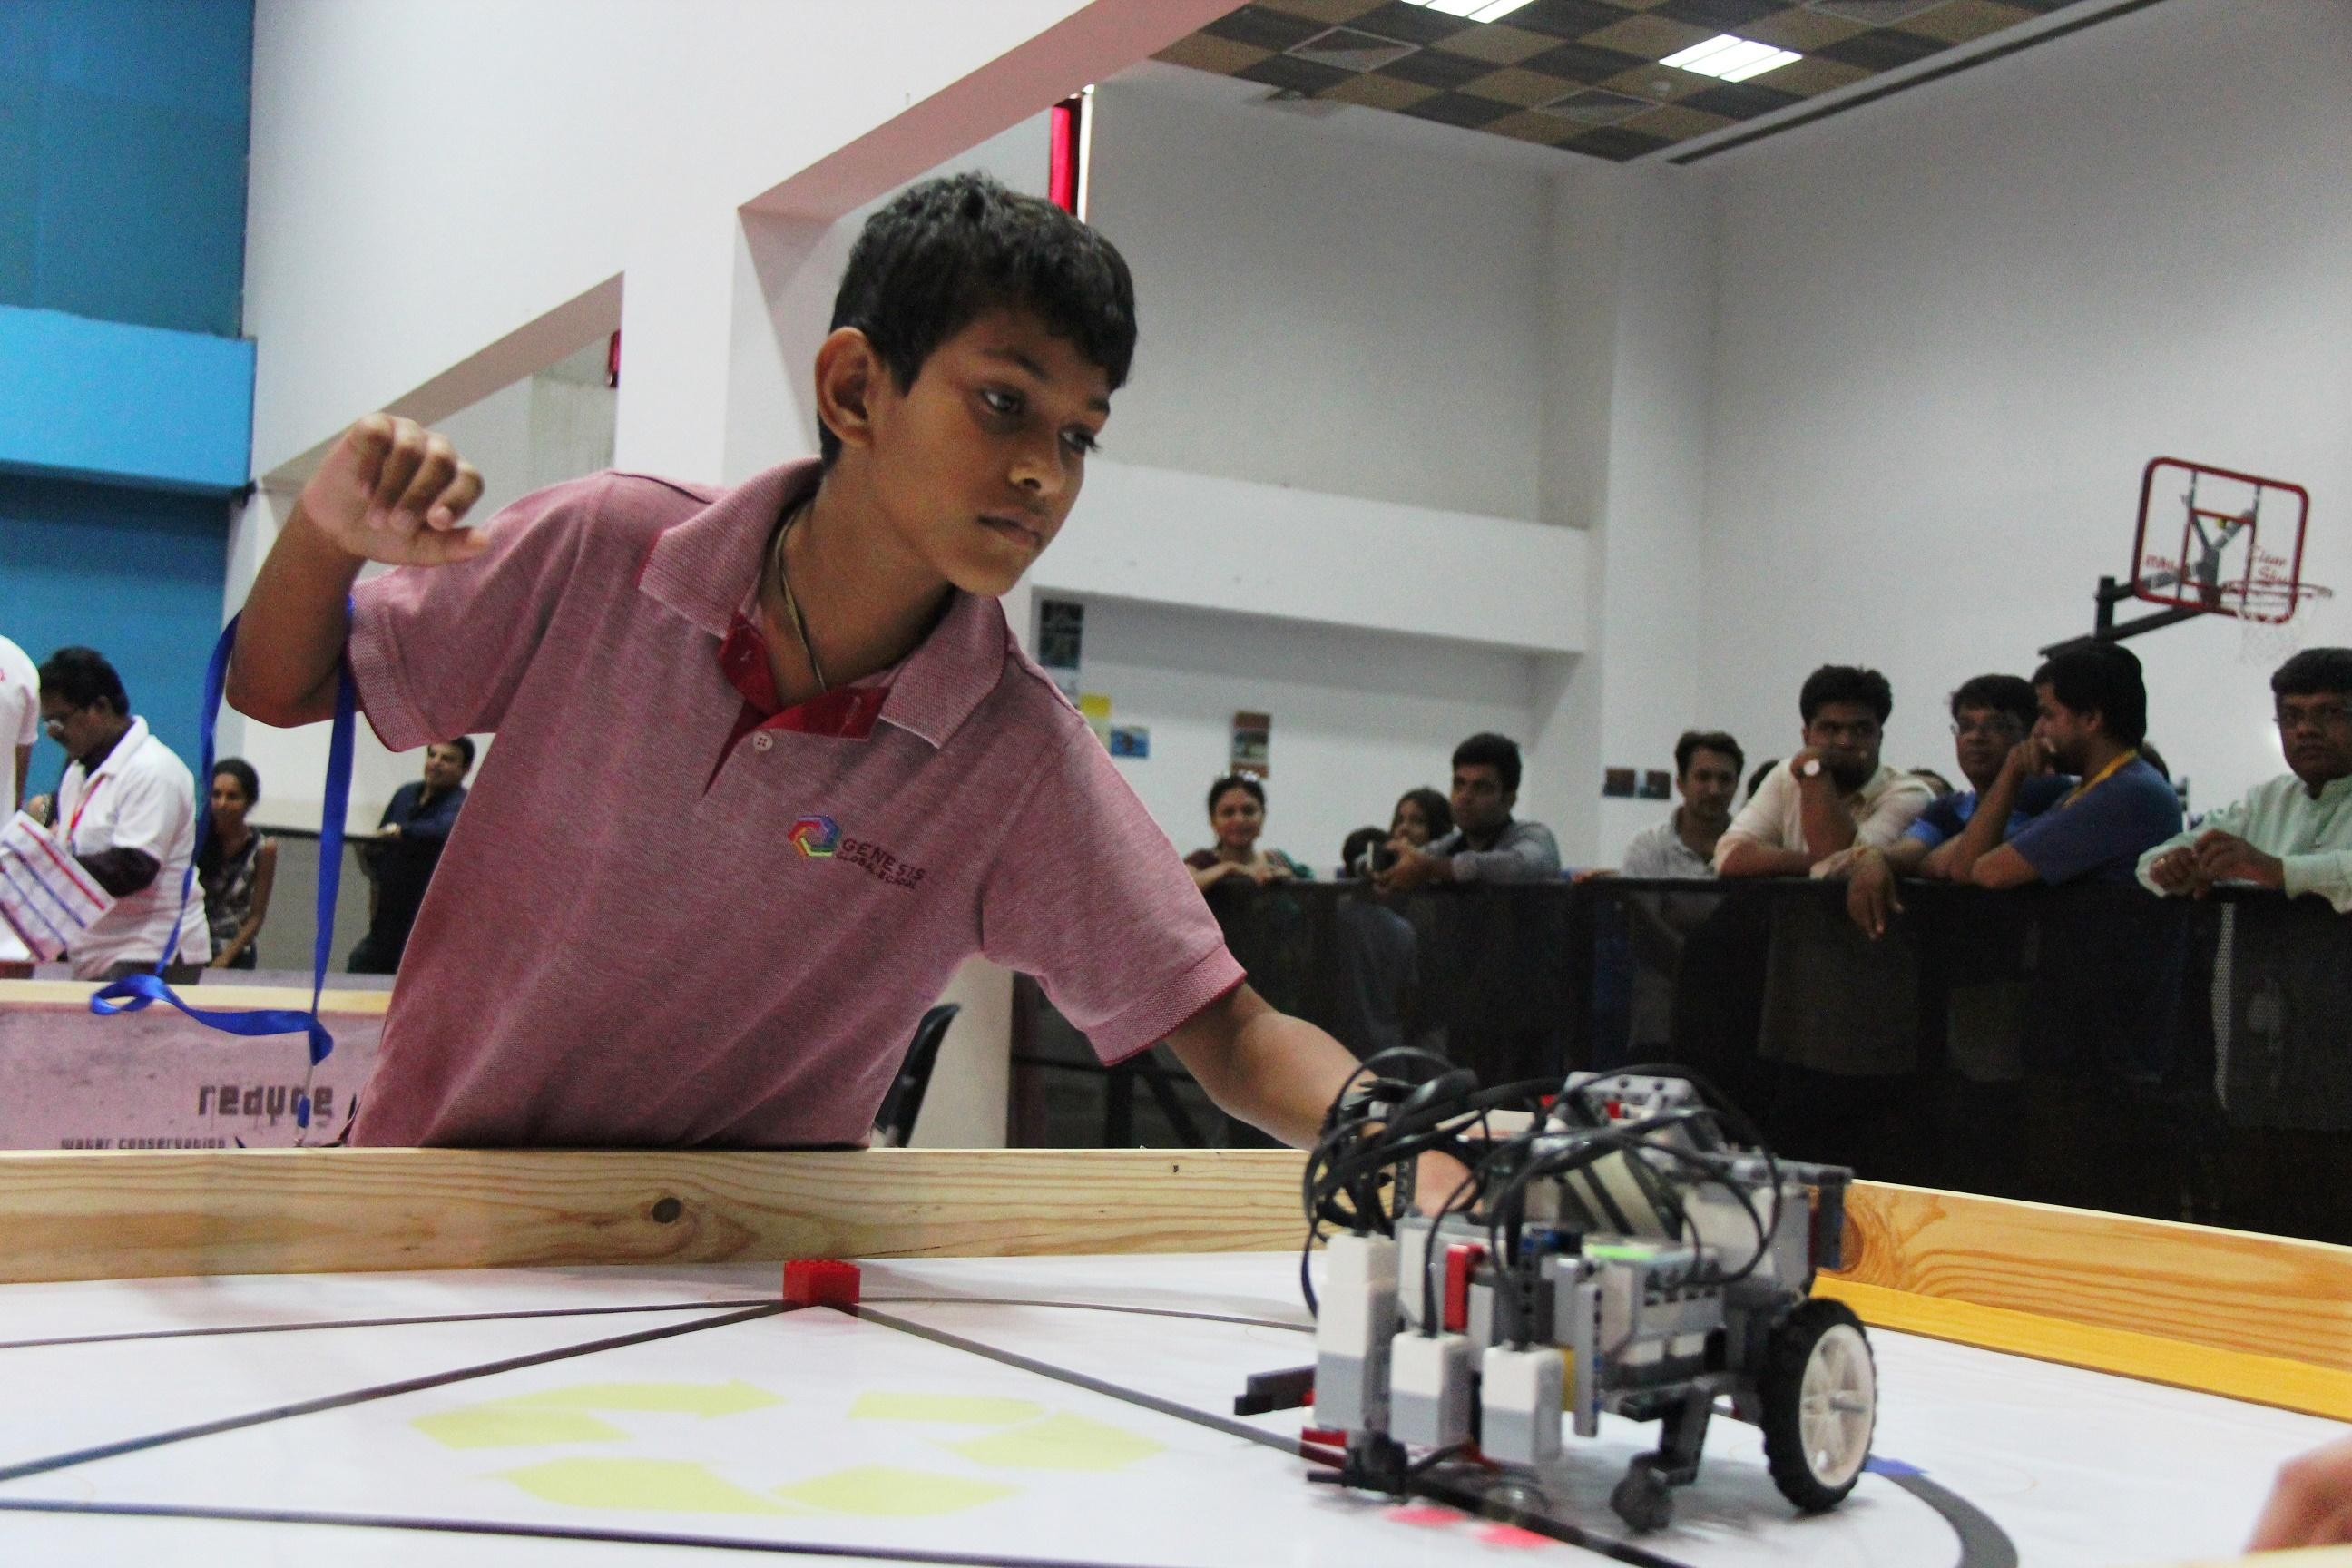 Student at the World Robot Olympiad 2016 at Genesis Global School